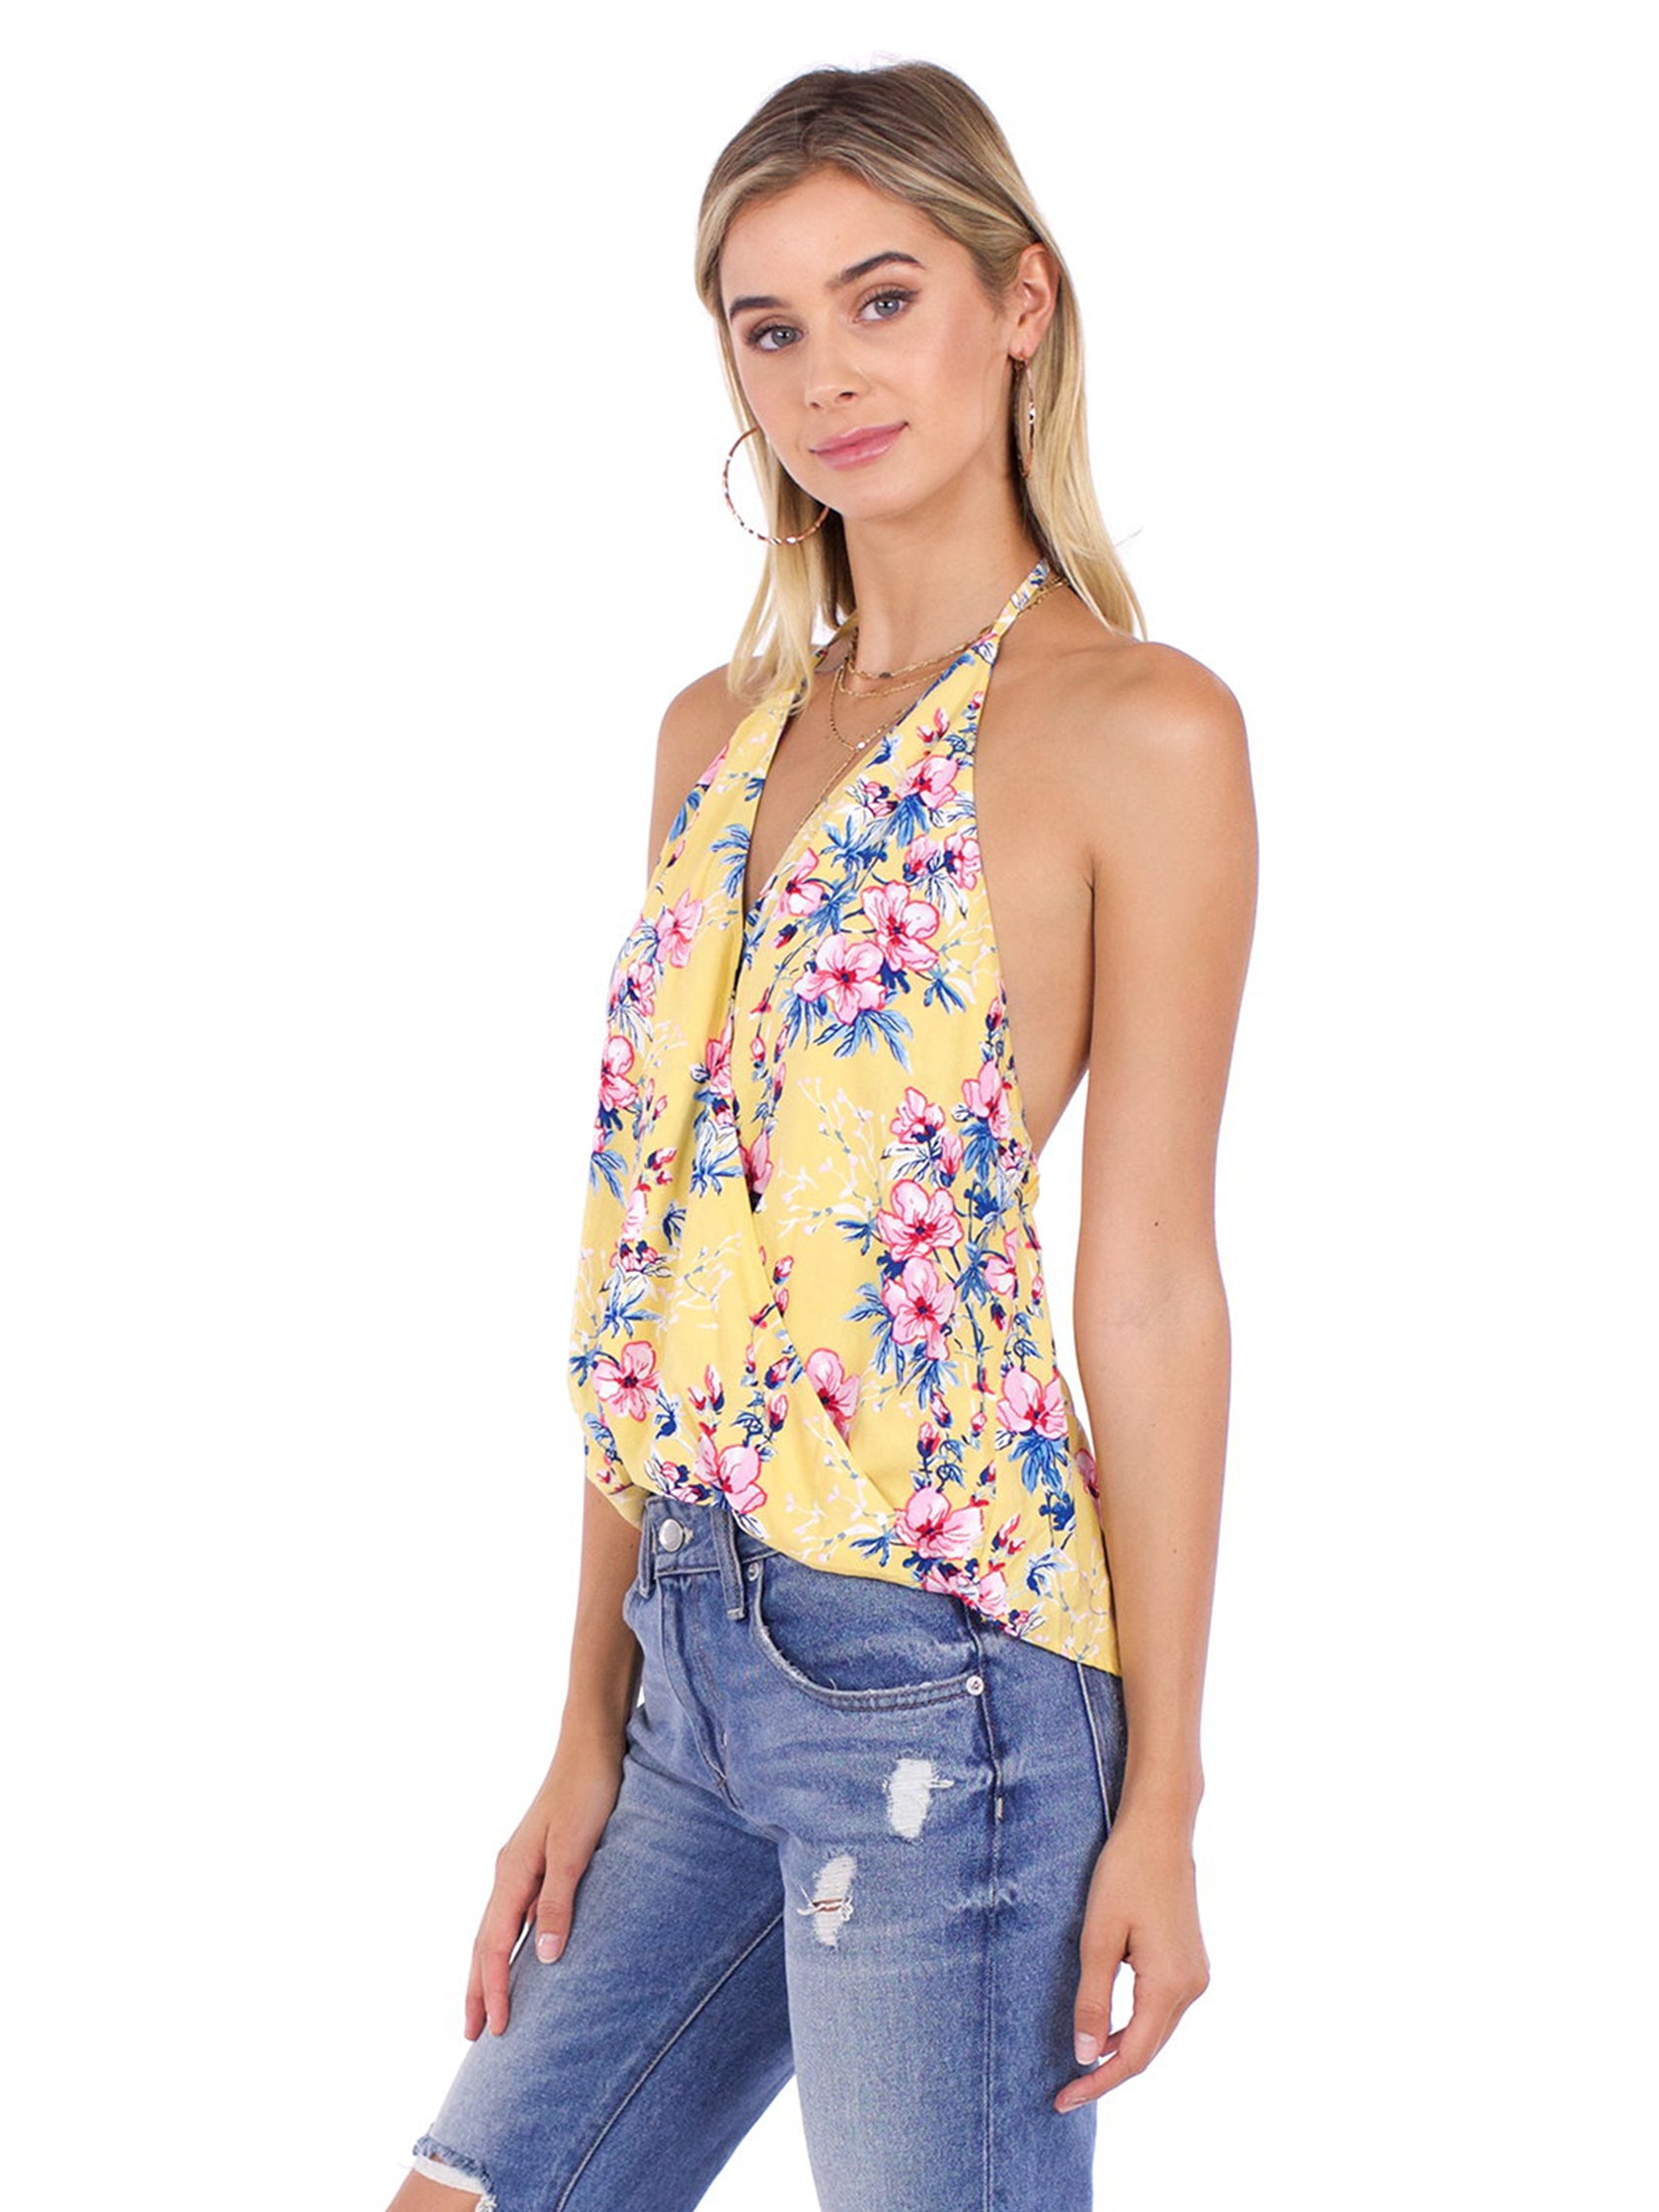 Women wearing a top rental from FashionPass called Honey Floral Top